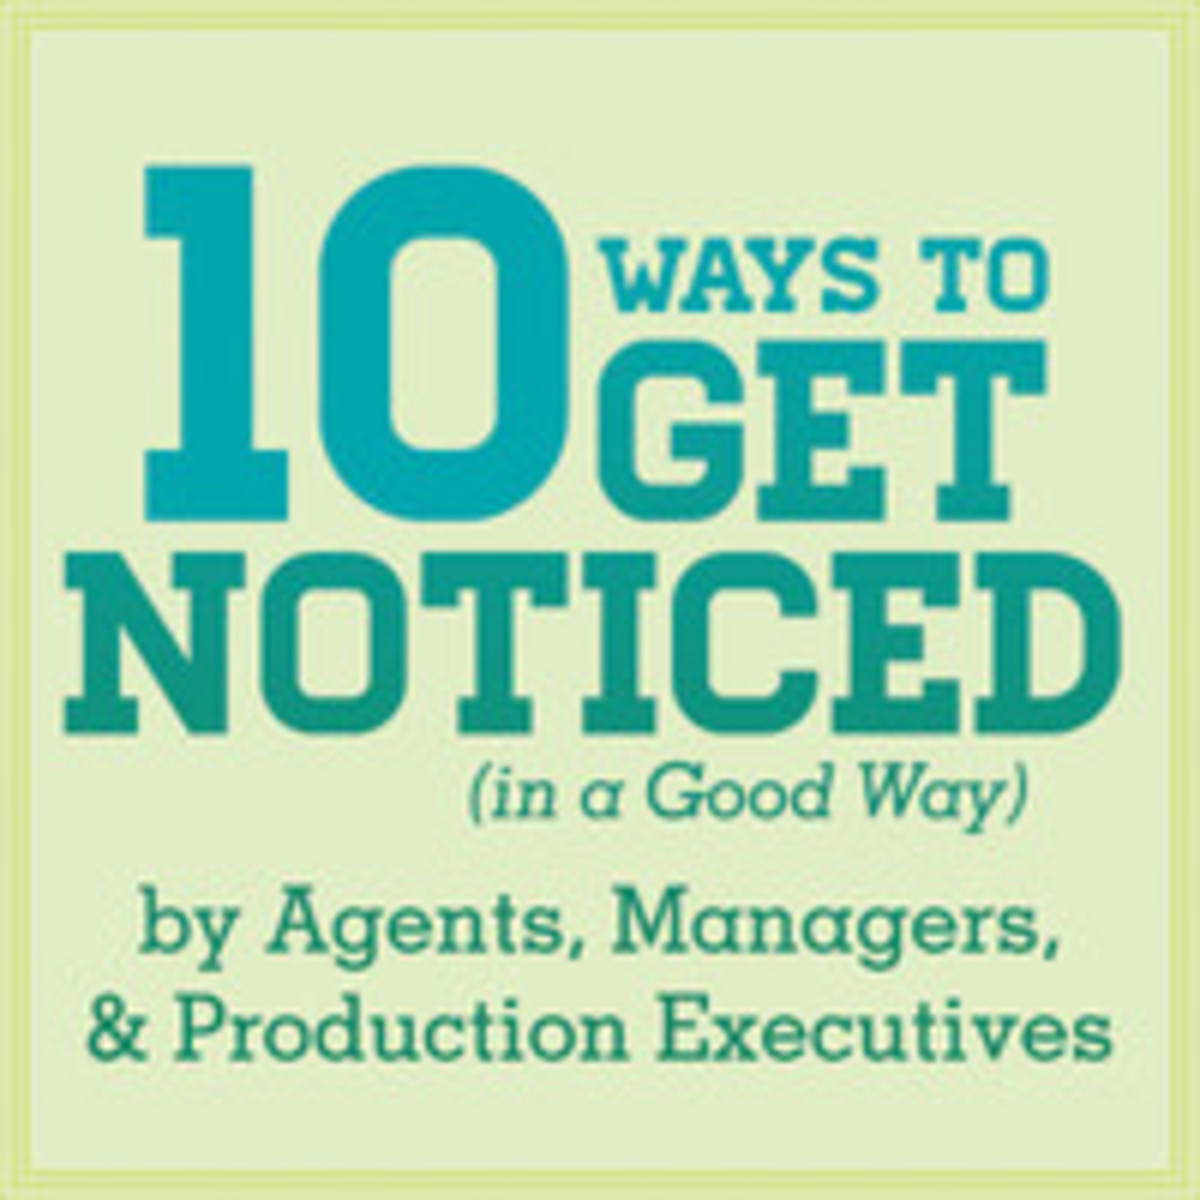 10 Ways to Get Noticed (in a Good Way)